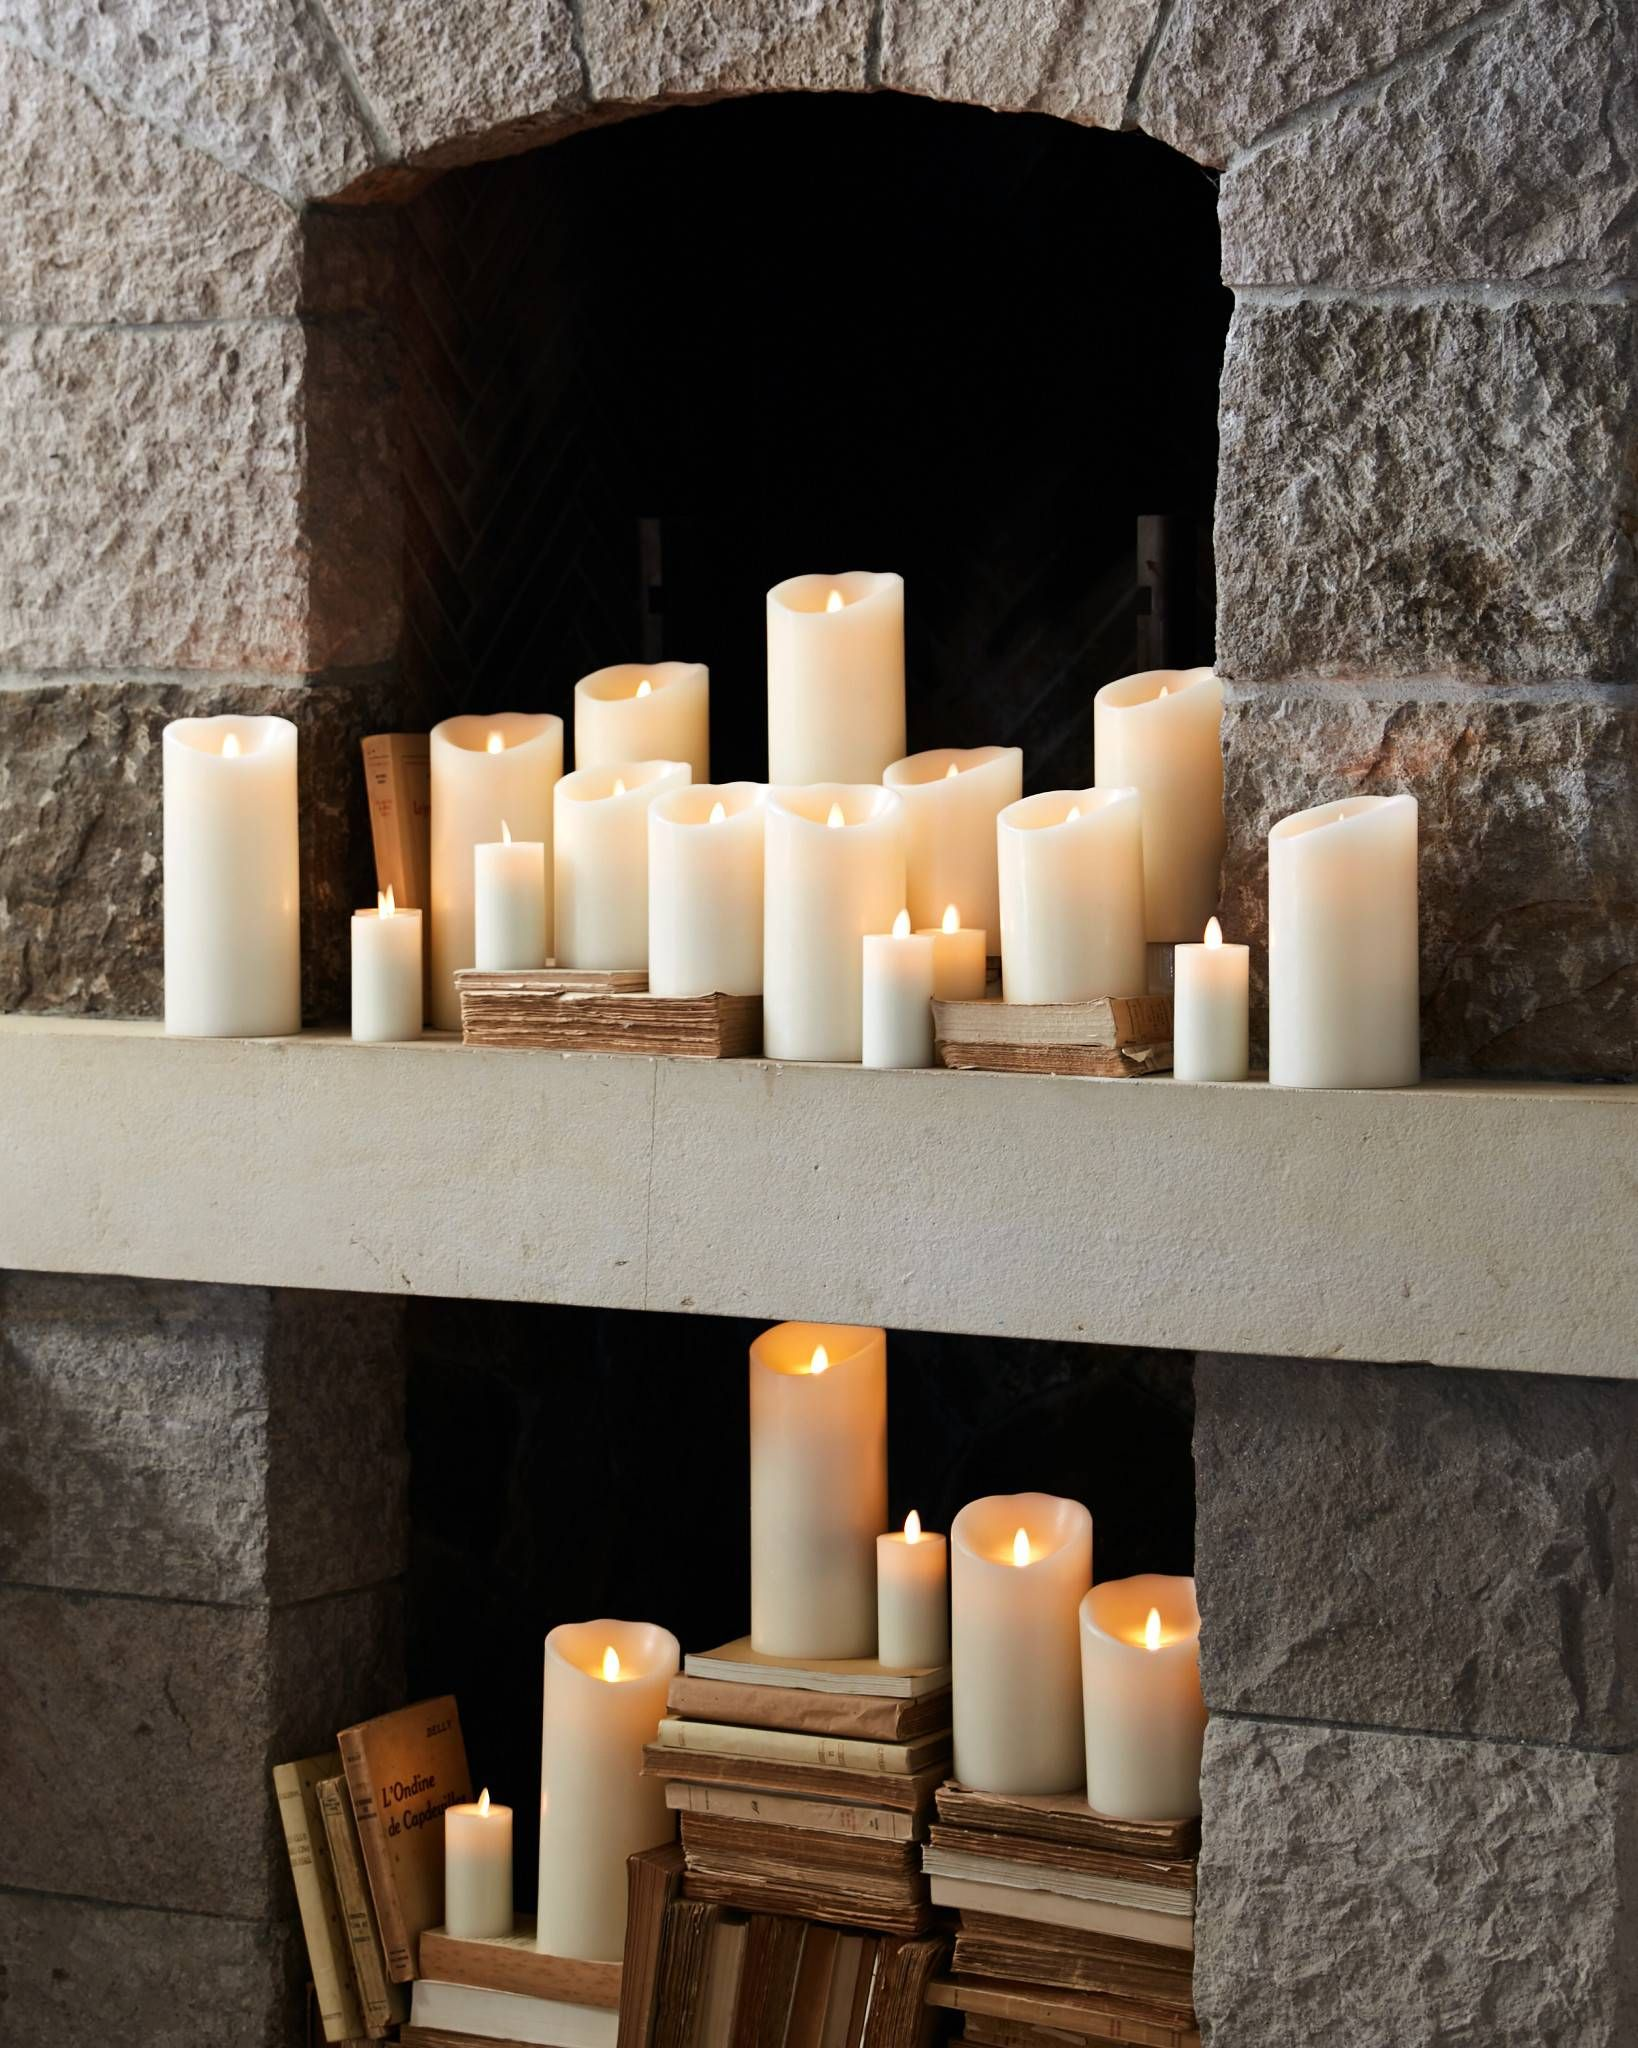 Miracle Flame Led Wax Pillar Candle Safe Wax Candles Pillar Candles Pillar Candles Fireplace Led Candle Decor